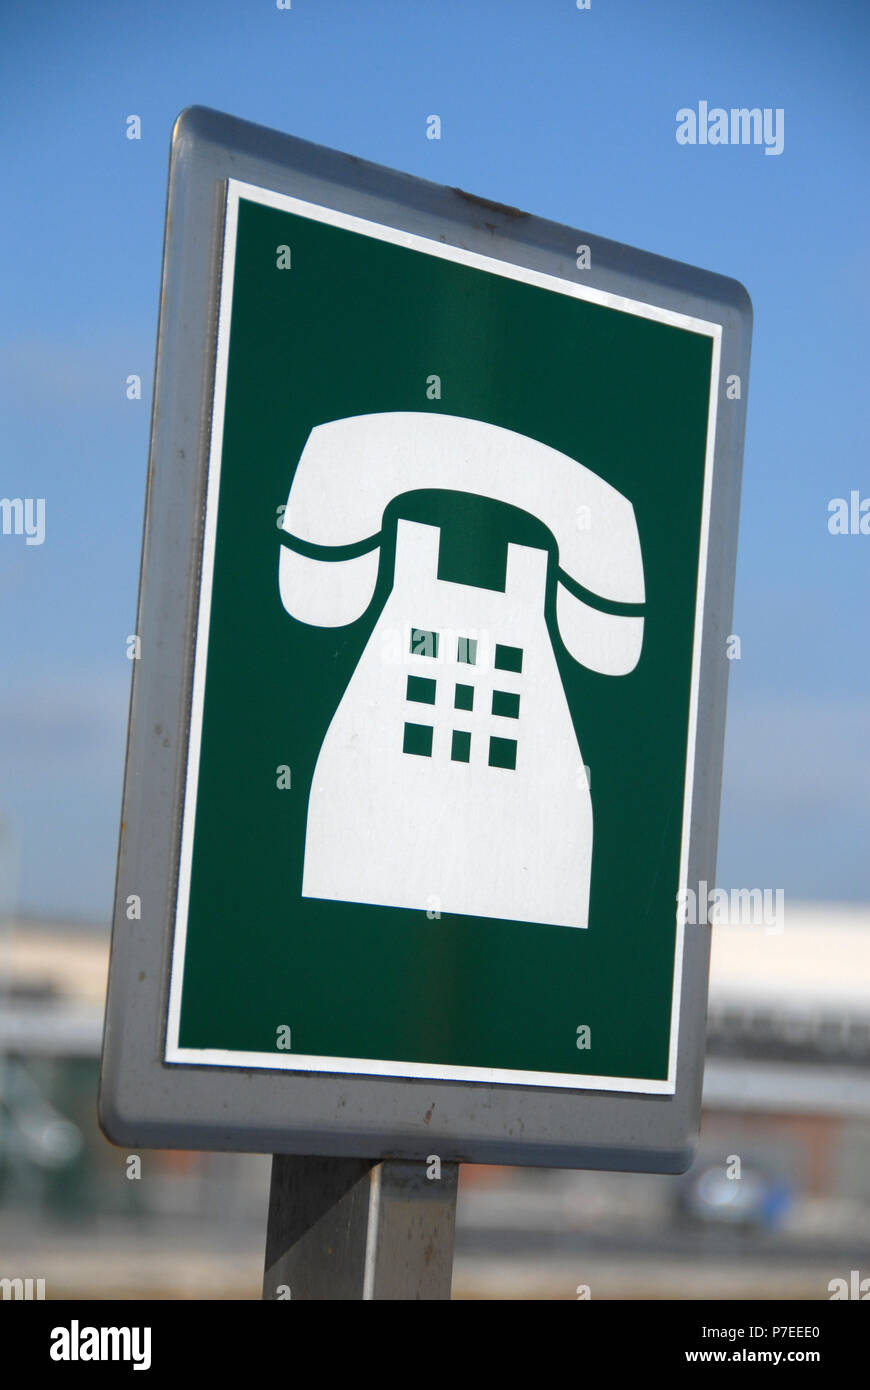 Airside staff telephone sign in green for staff only at the Doncaster Sheffield Airport, formerly named Robin Hood Airport Doncaster Sheffield, - Stock Image